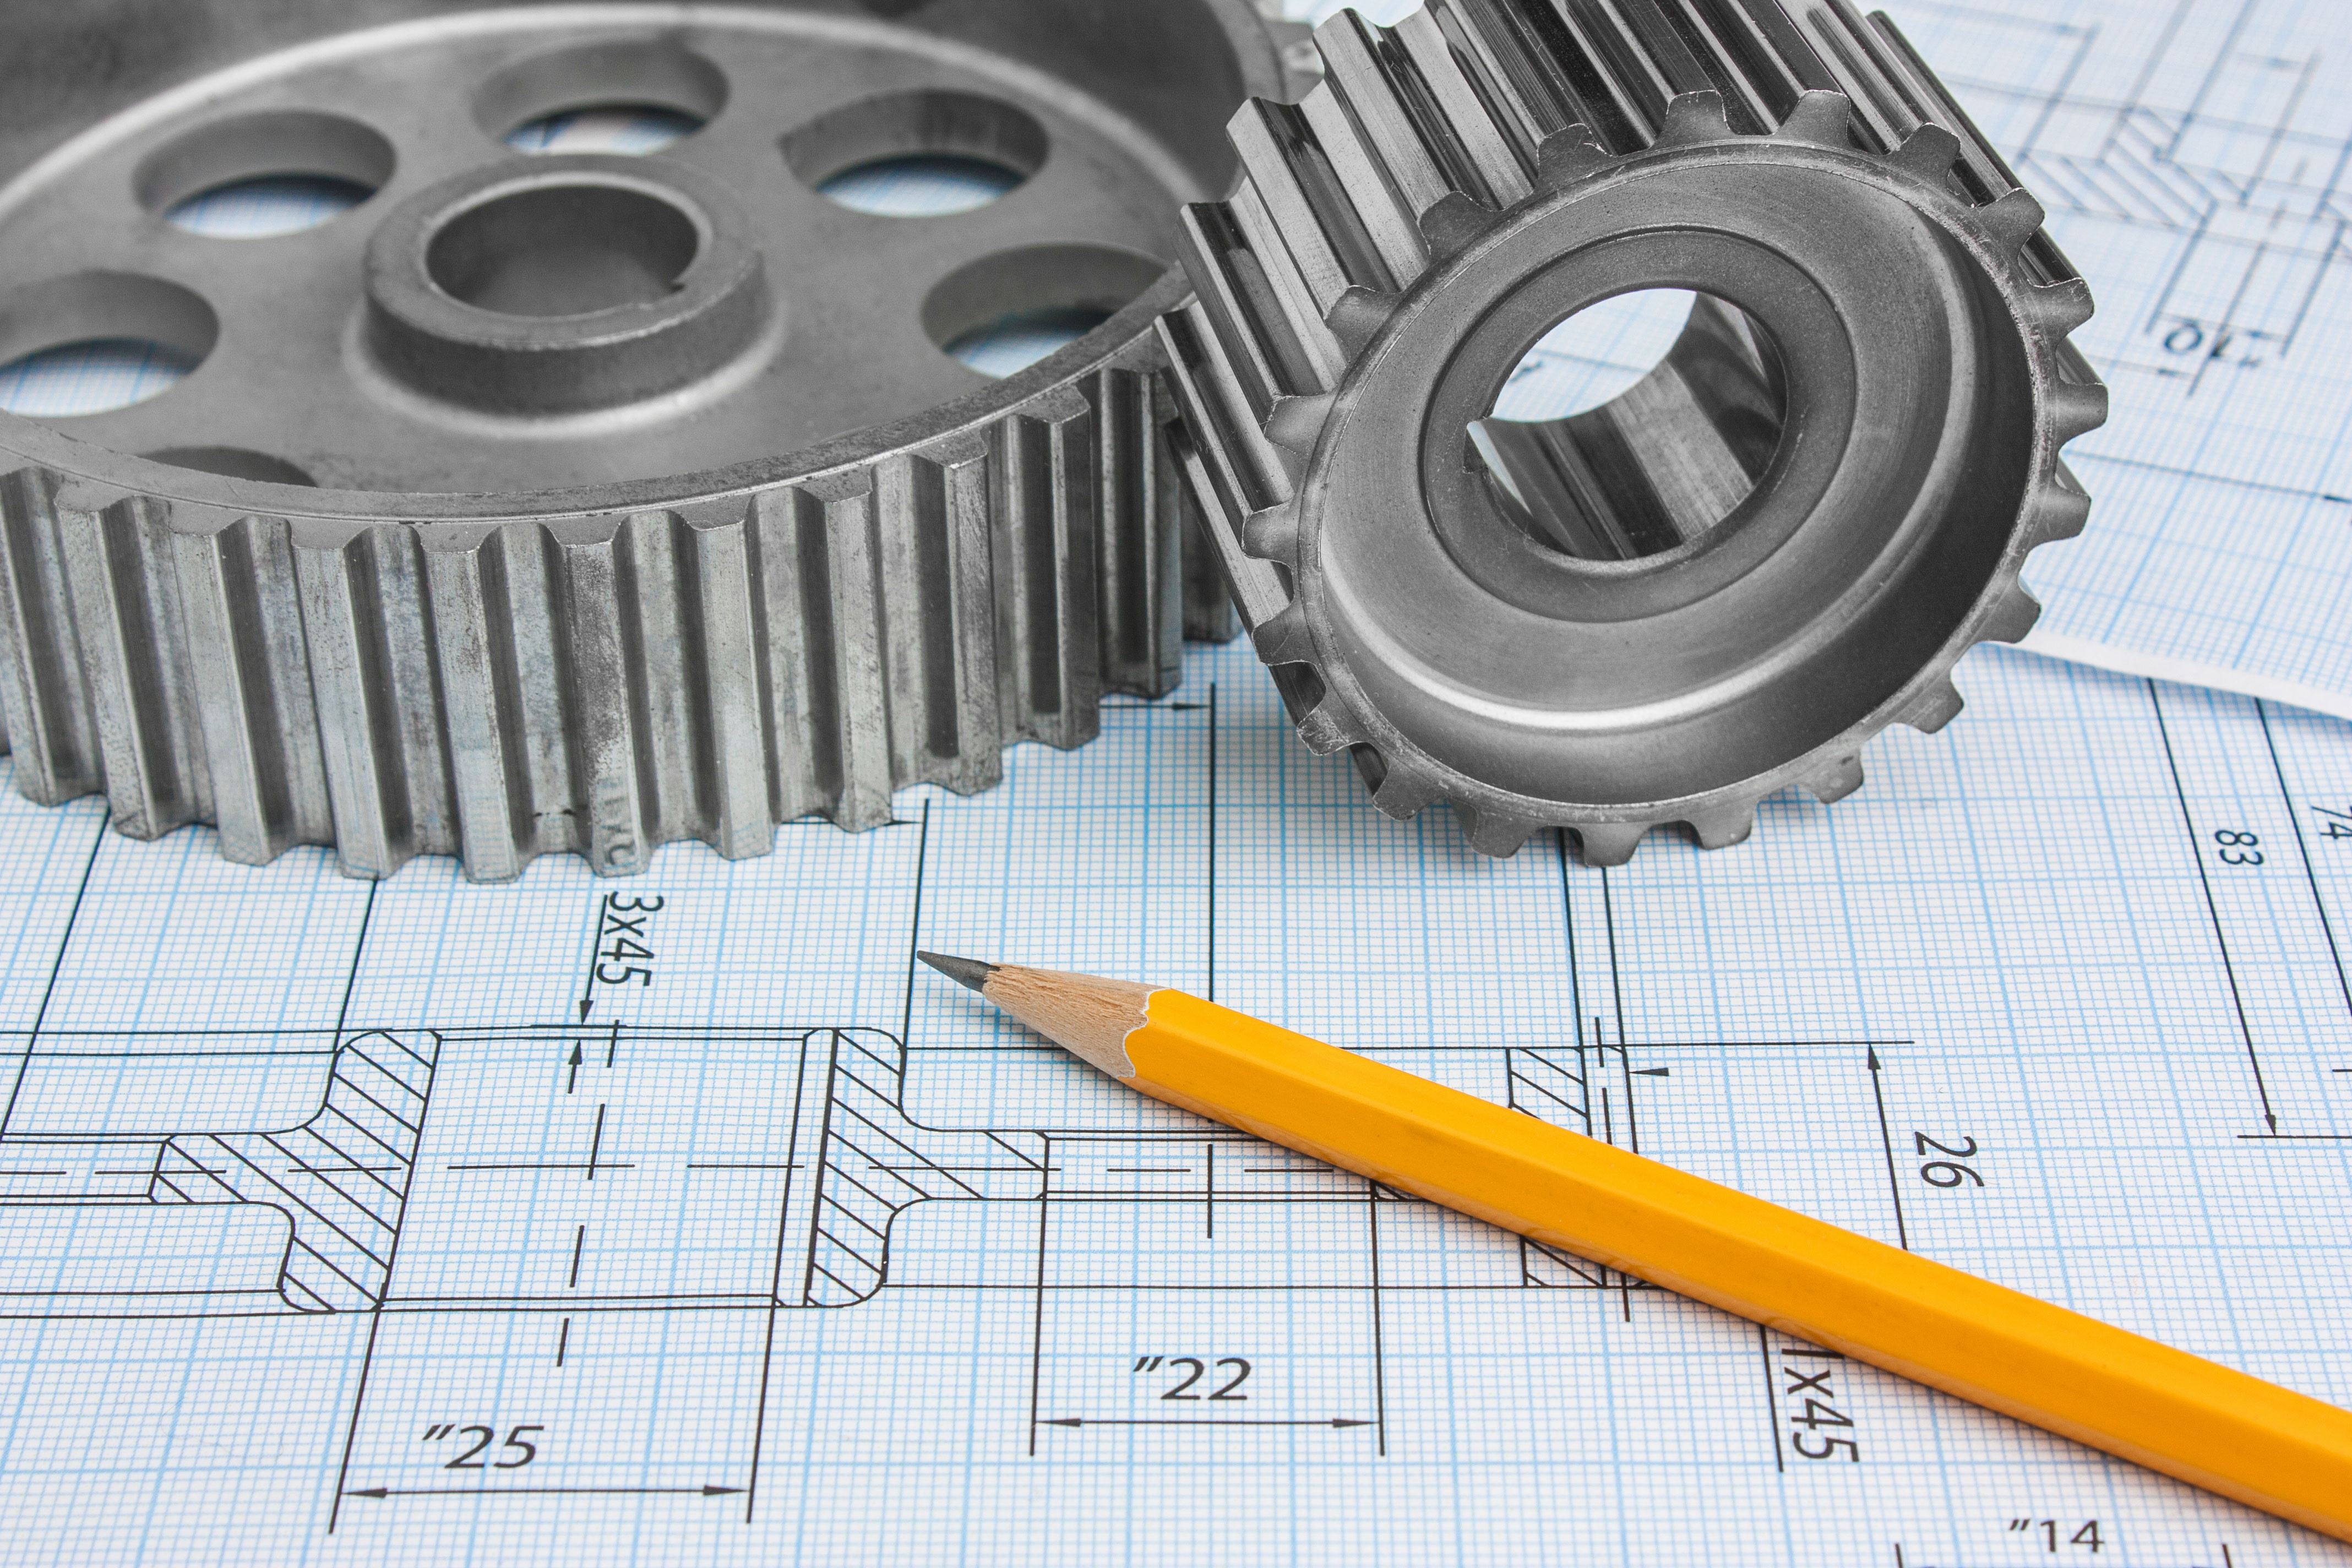 ENGINEERING - All Engineering Services